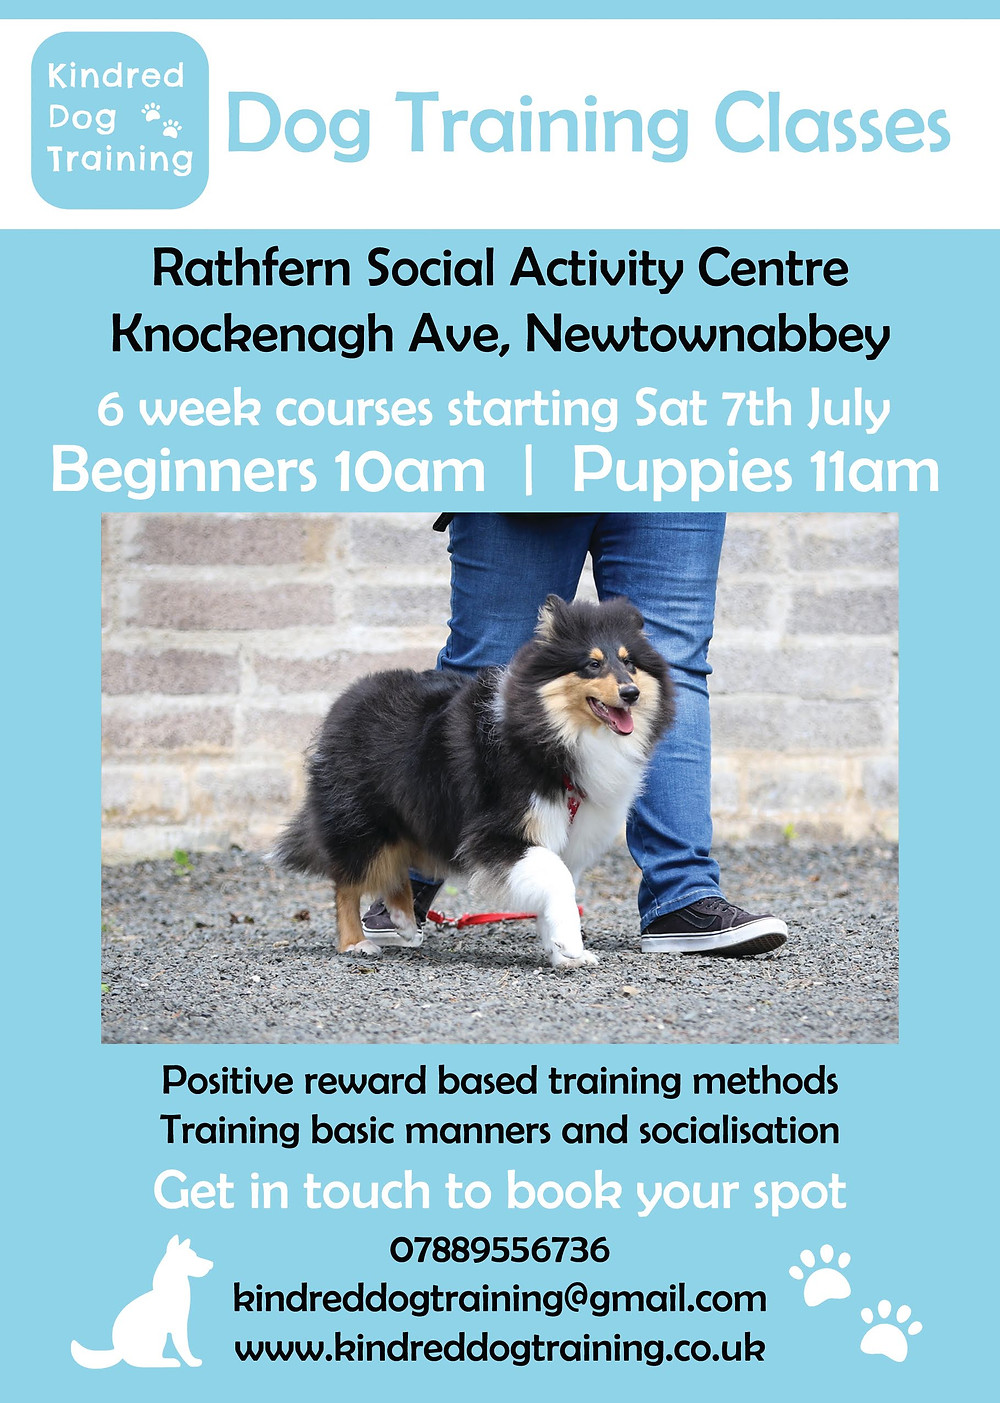 Puppy training classes, dog training classes Newtownabbey Co Antrim Northern Ireland